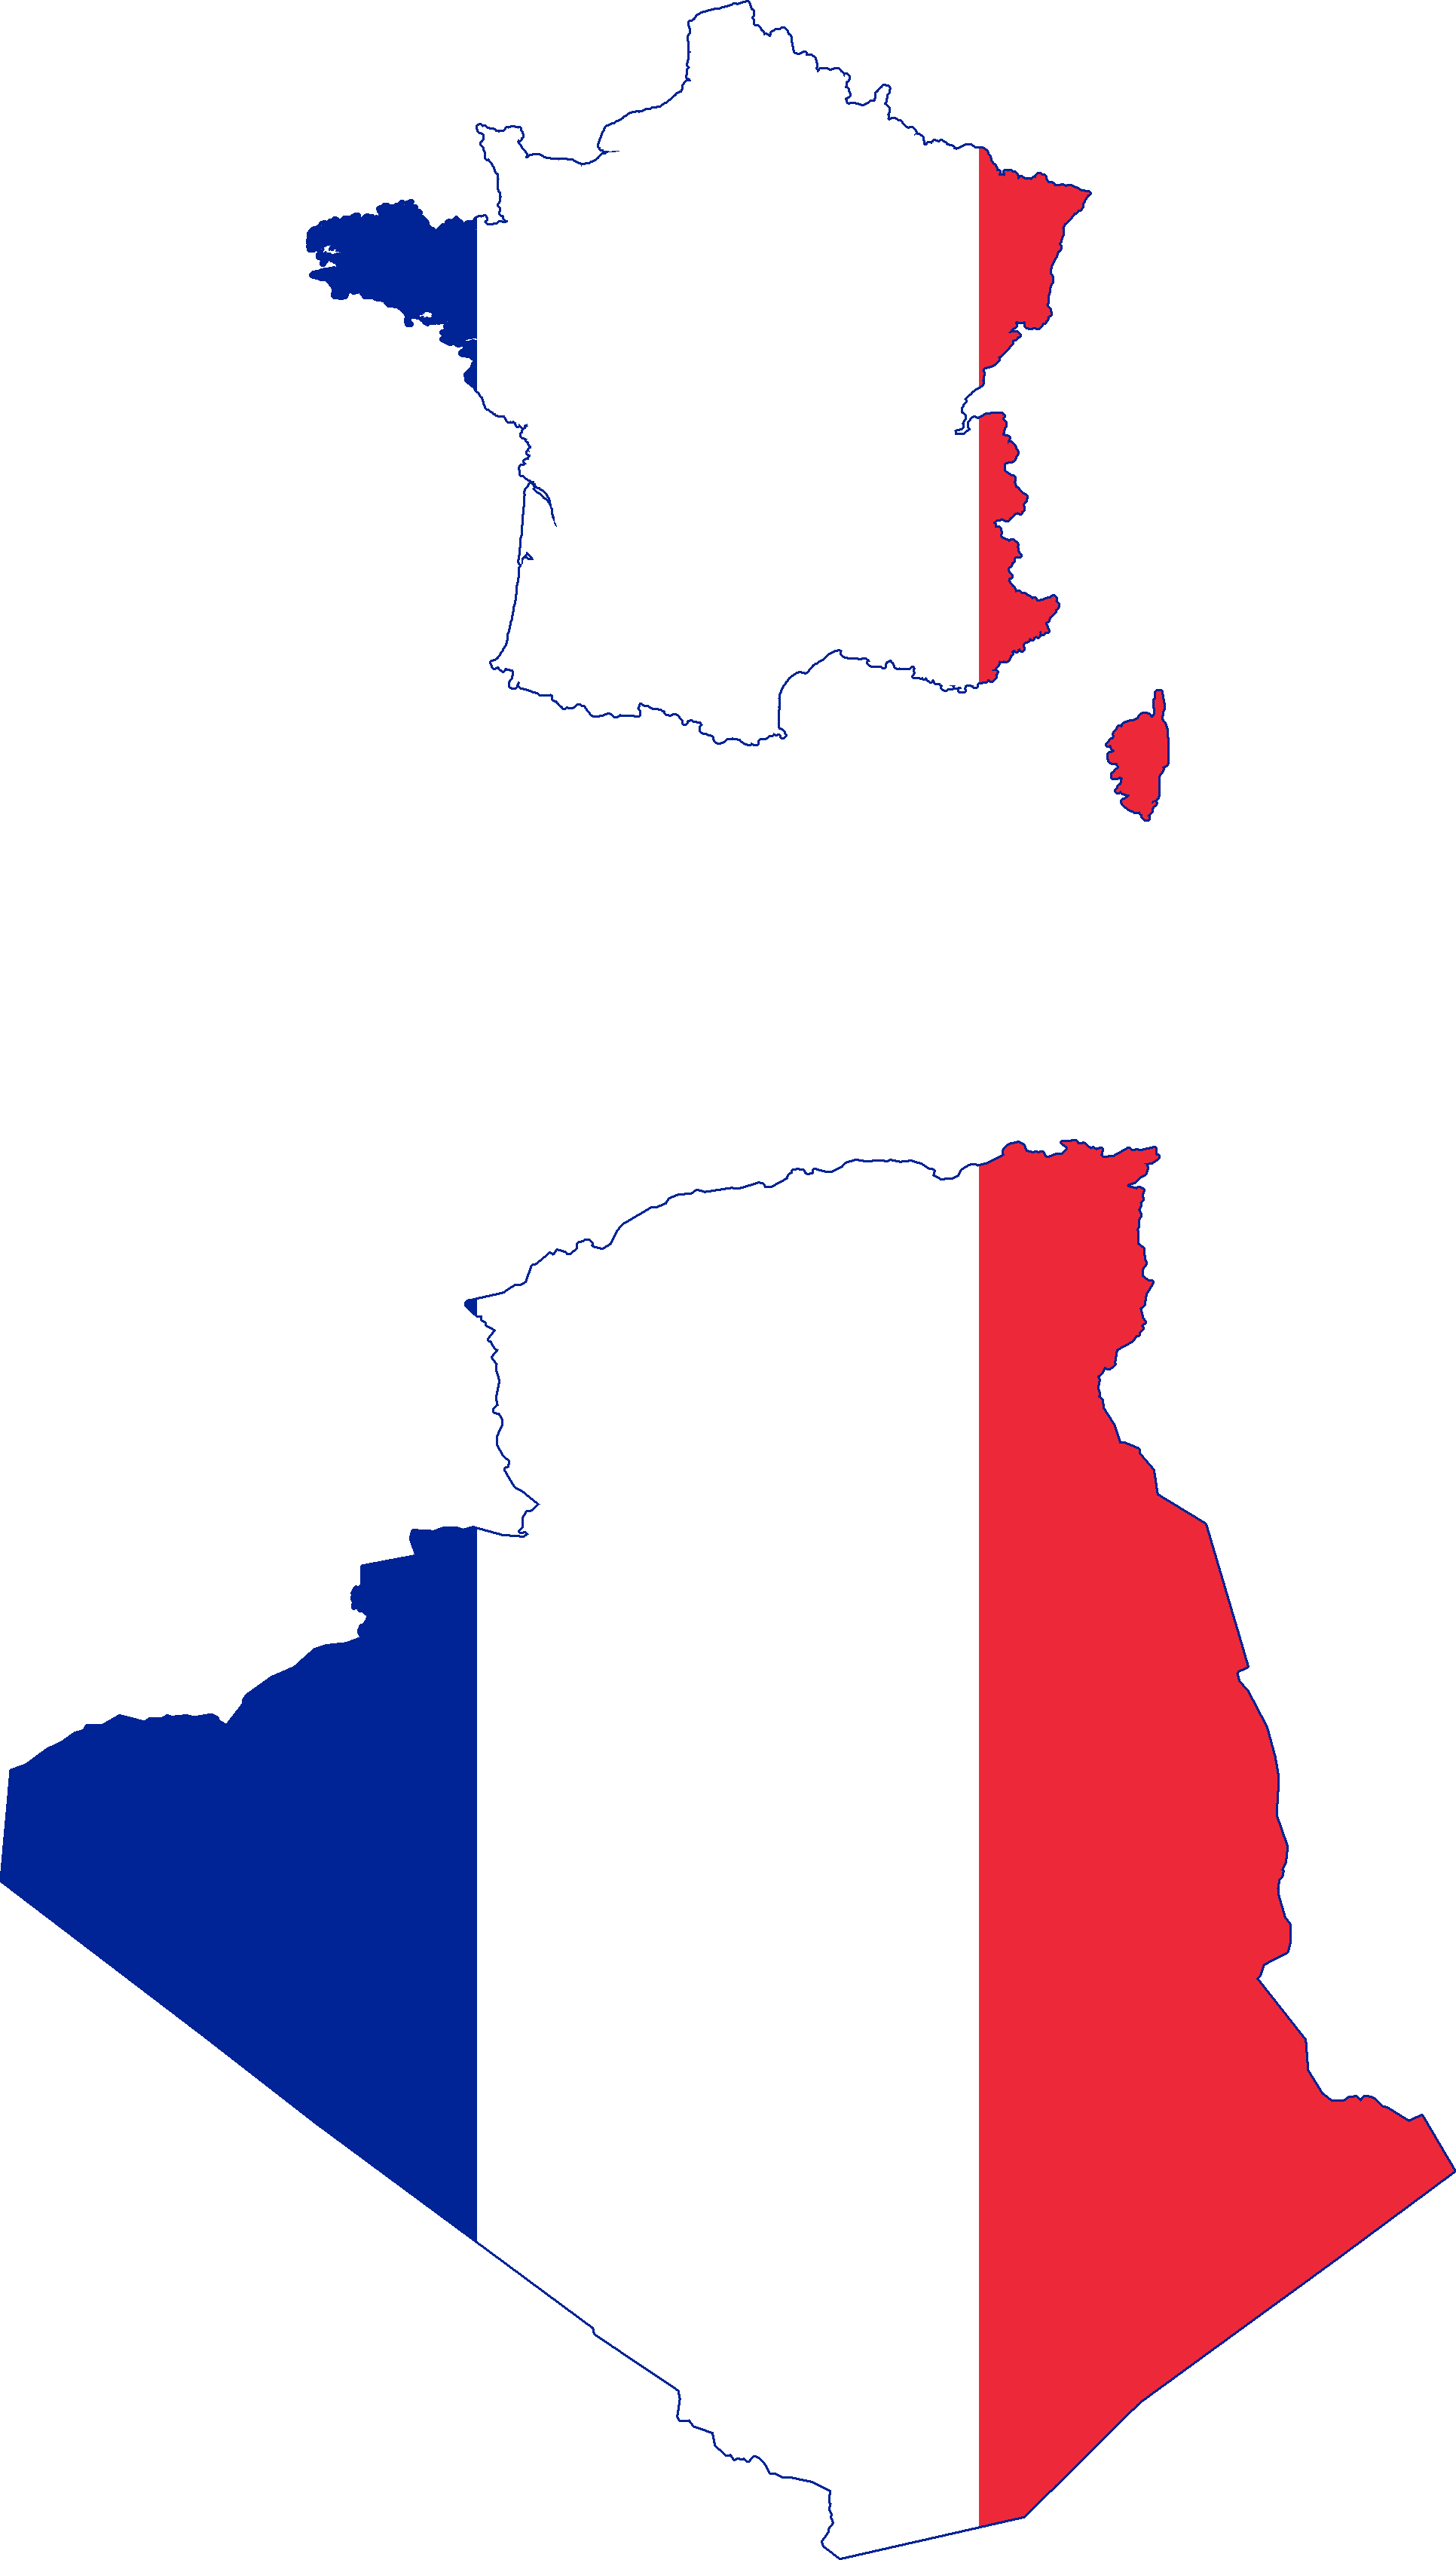 France Map Flag.File Flag Map Of France And Algeria 1848 1962 Png Wikimedia